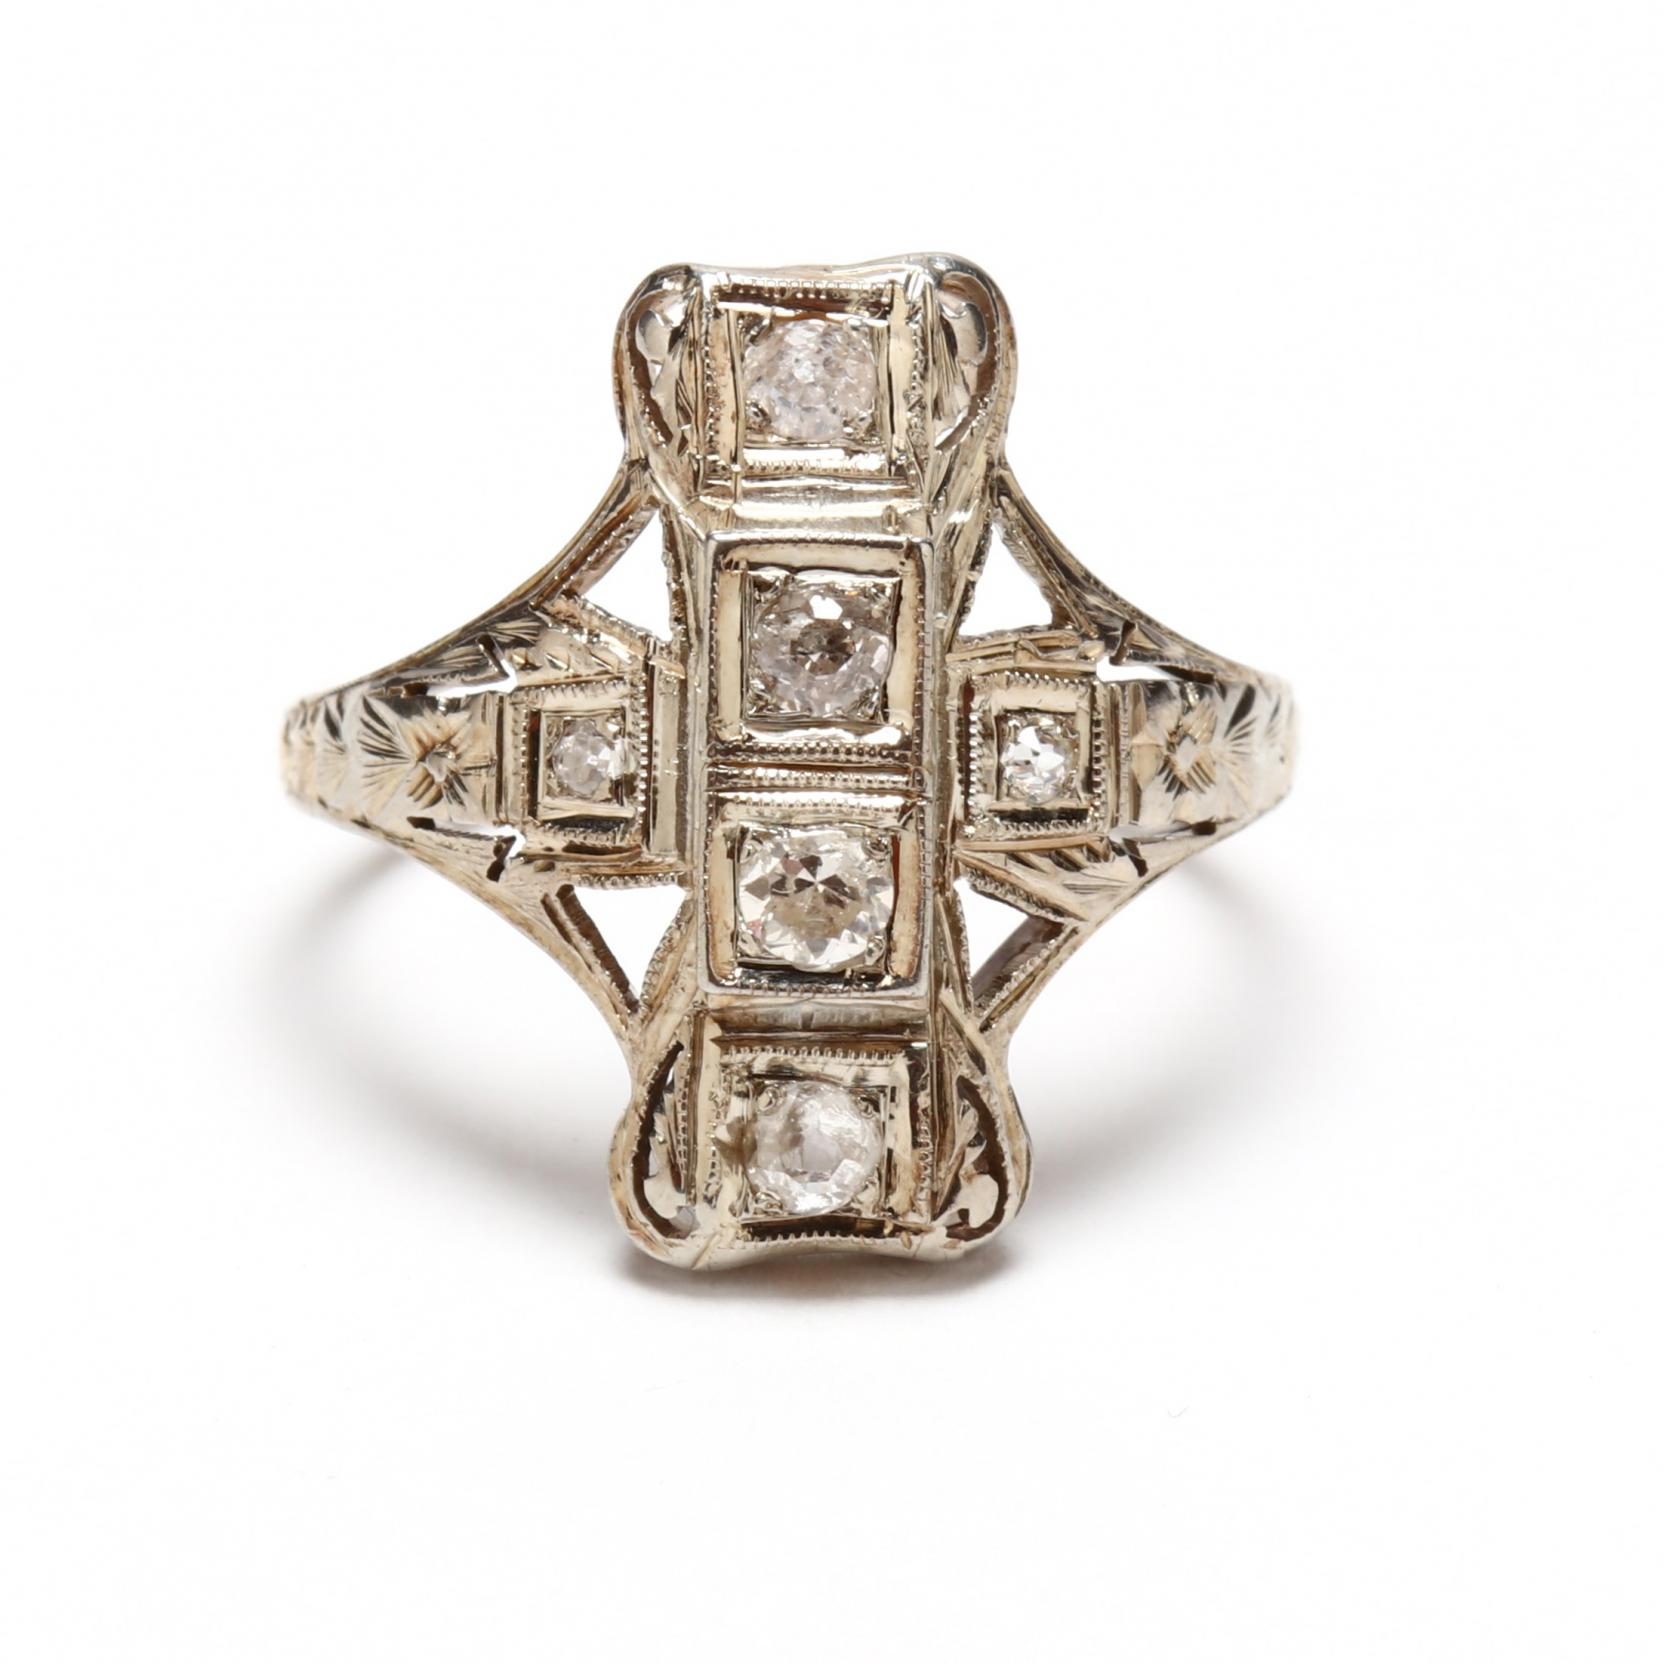 antique-18kt-white-gold-and-diamond-ring